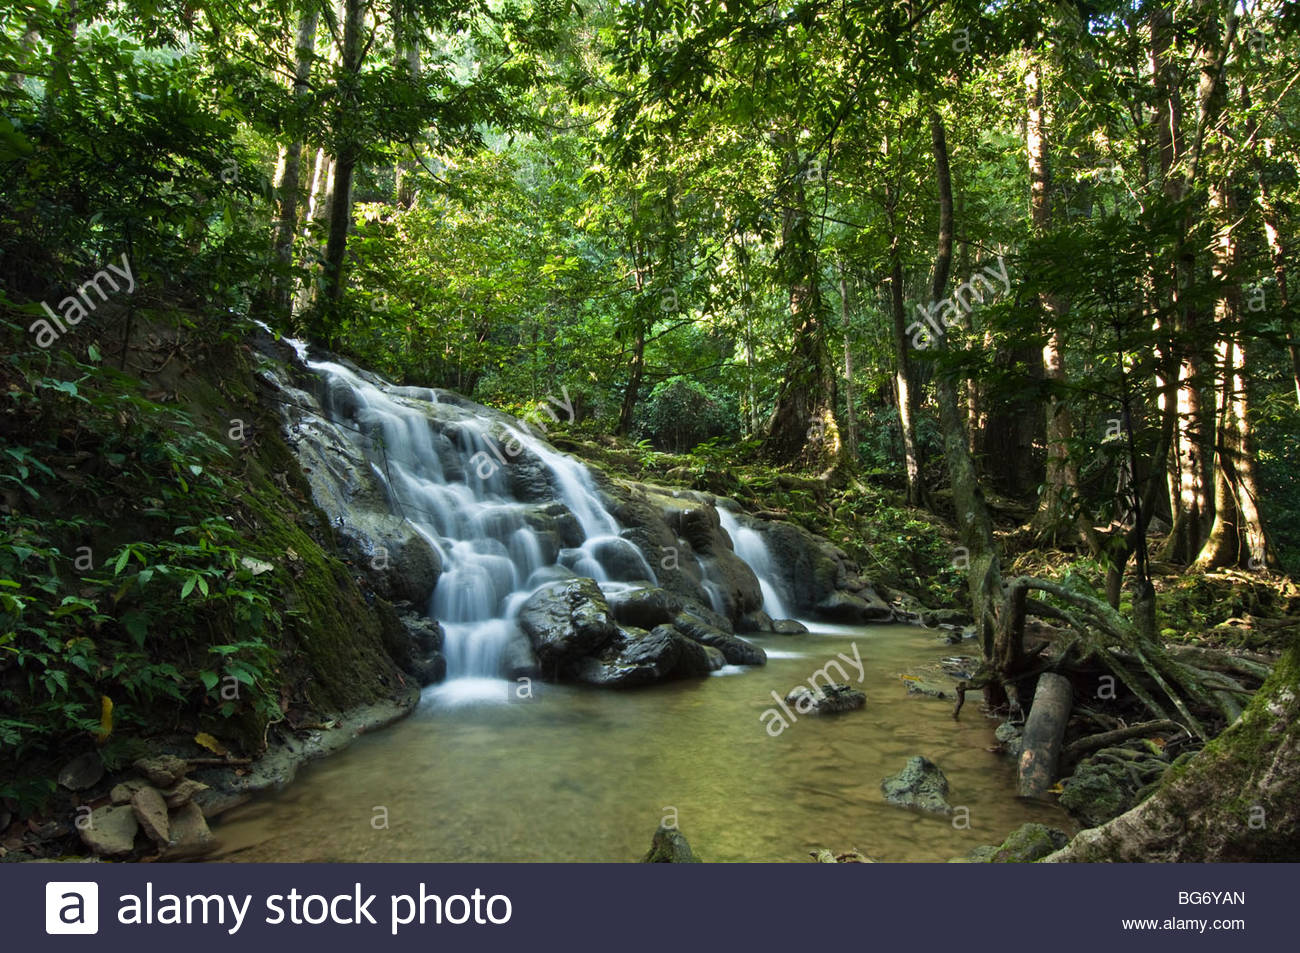 Waterfall in the tropical rainforest. - Stock Image